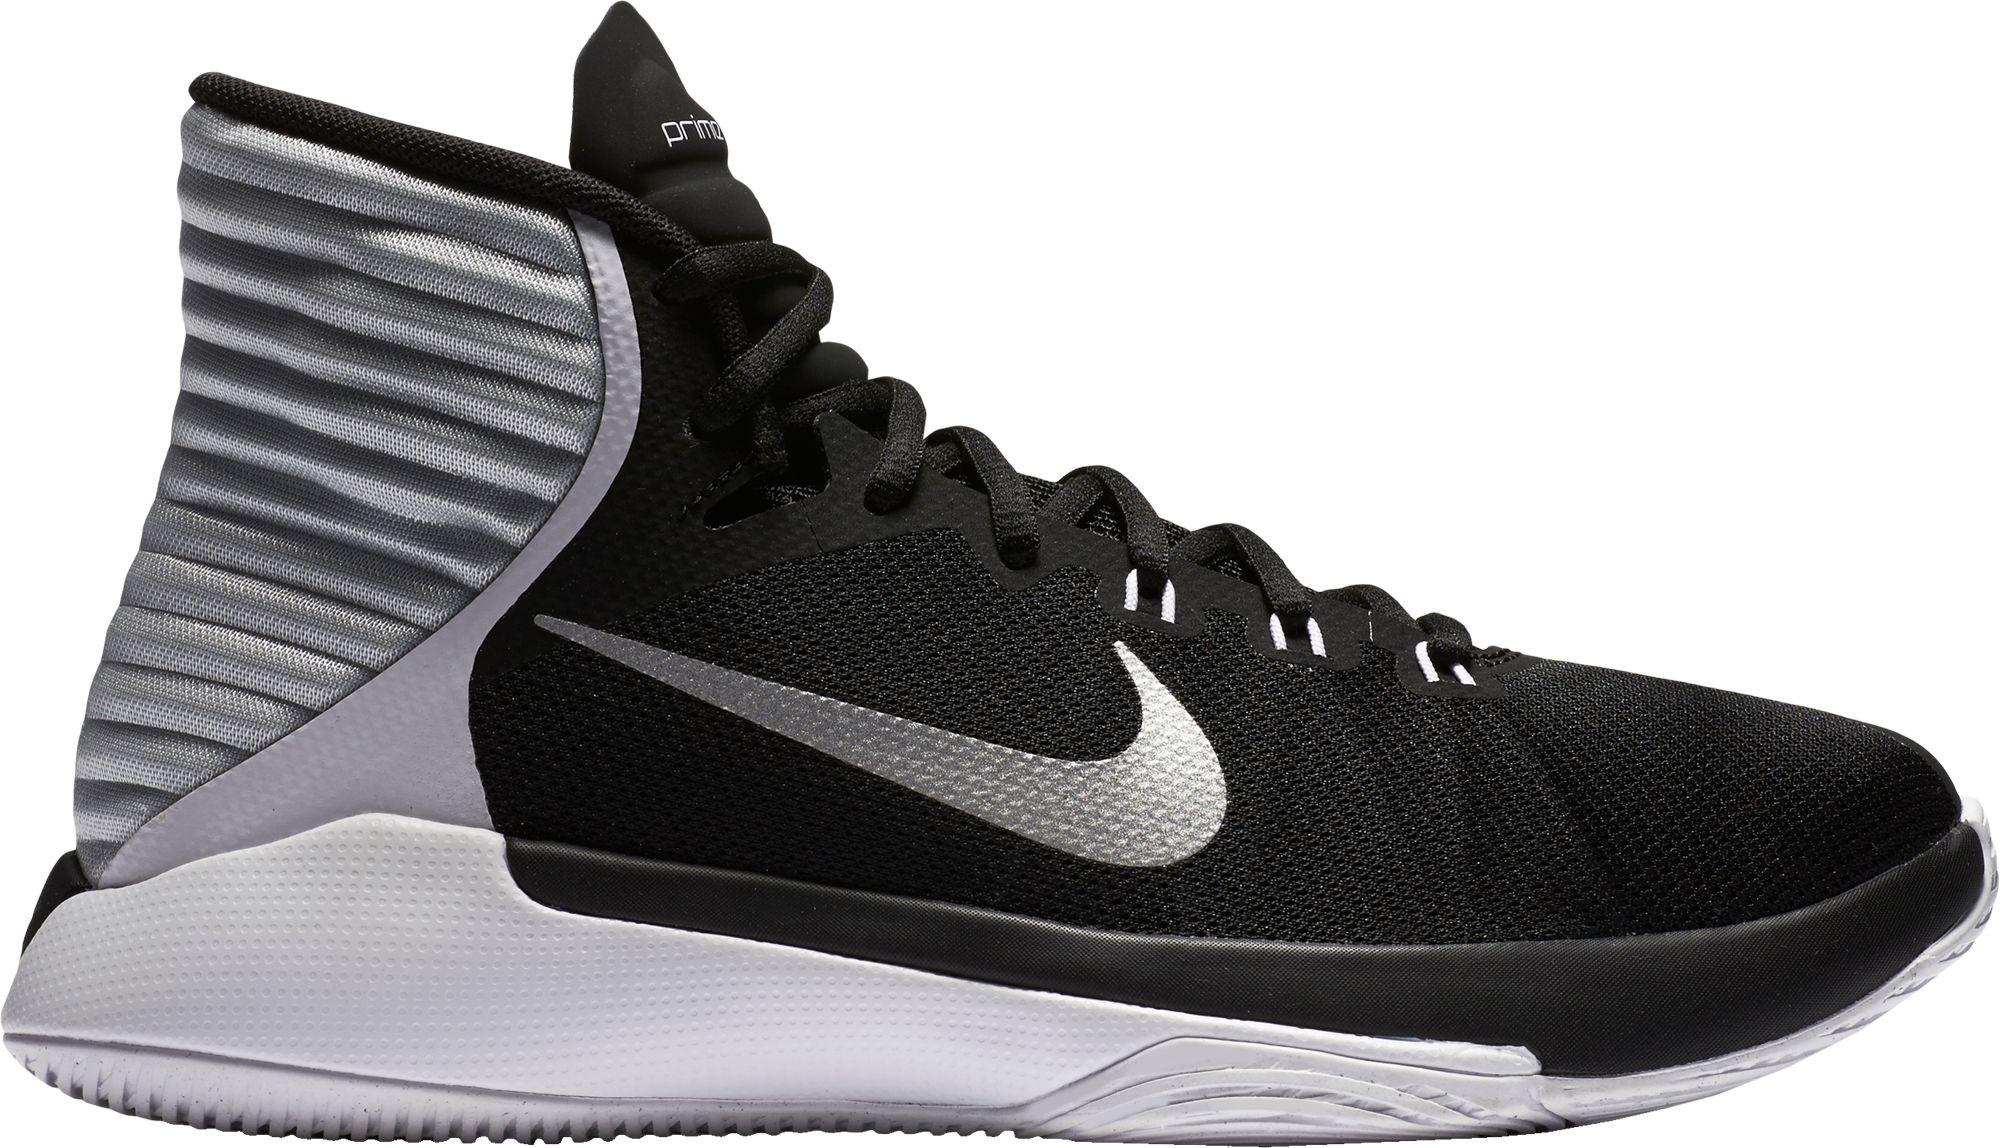 finest selection aafe9 2b74e Lyst - Nike Prime Hype Df 2016 Basketball Shoes in Black